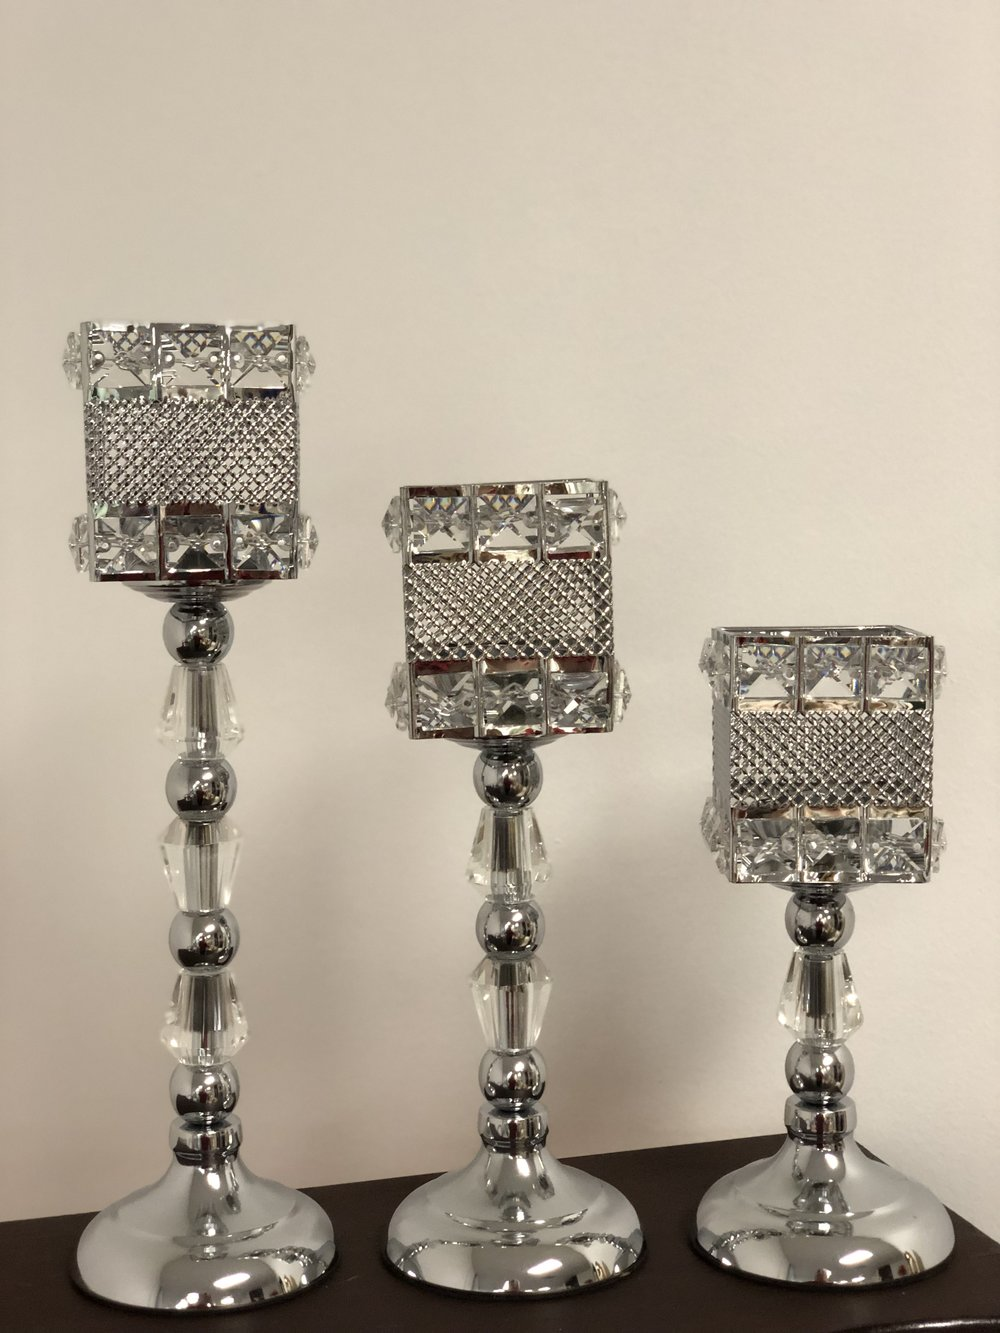 Silver set of 3 Centerpiece